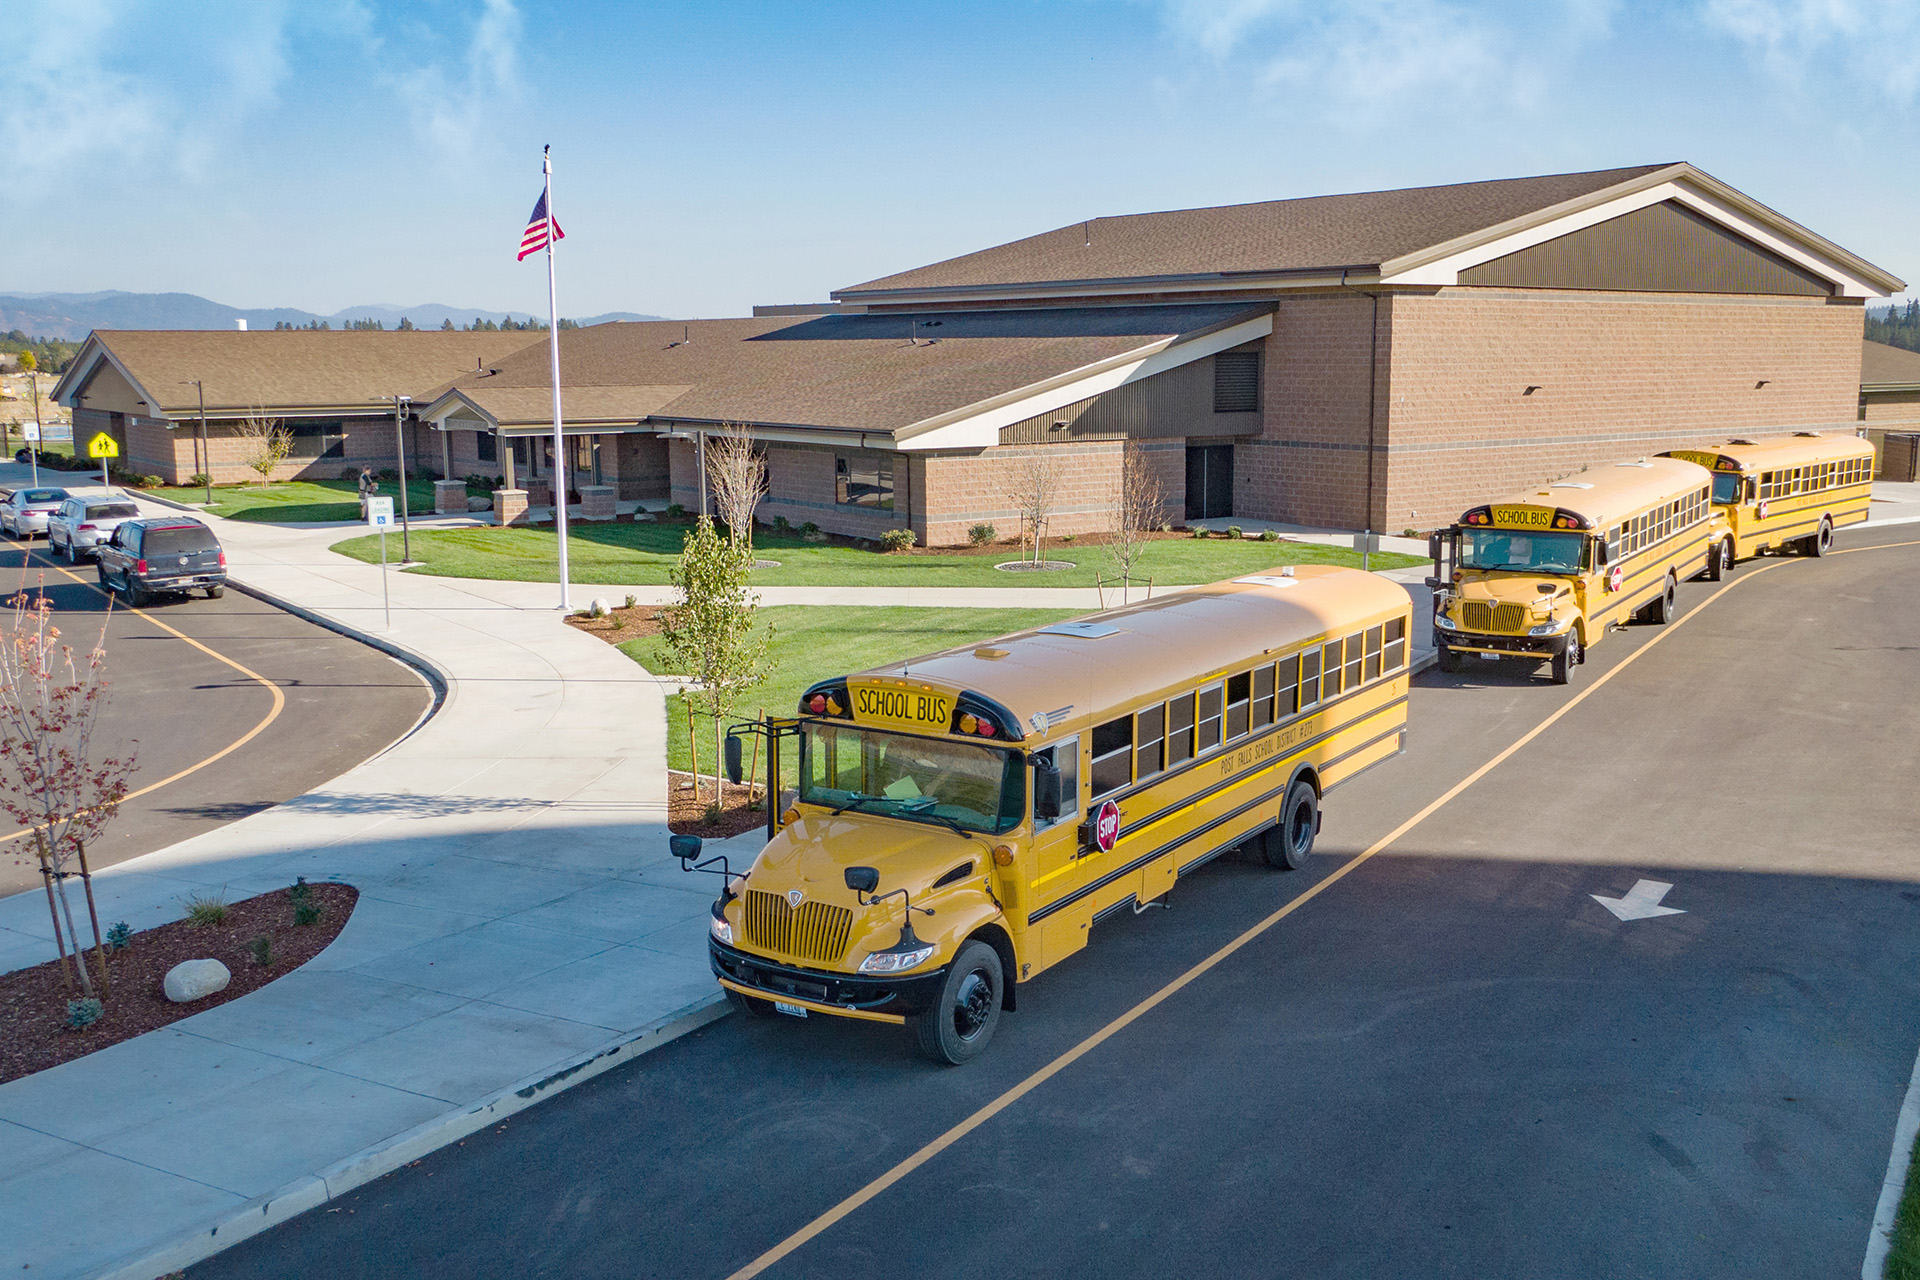 Treaty Rock Elementary Bus Loop and Entry